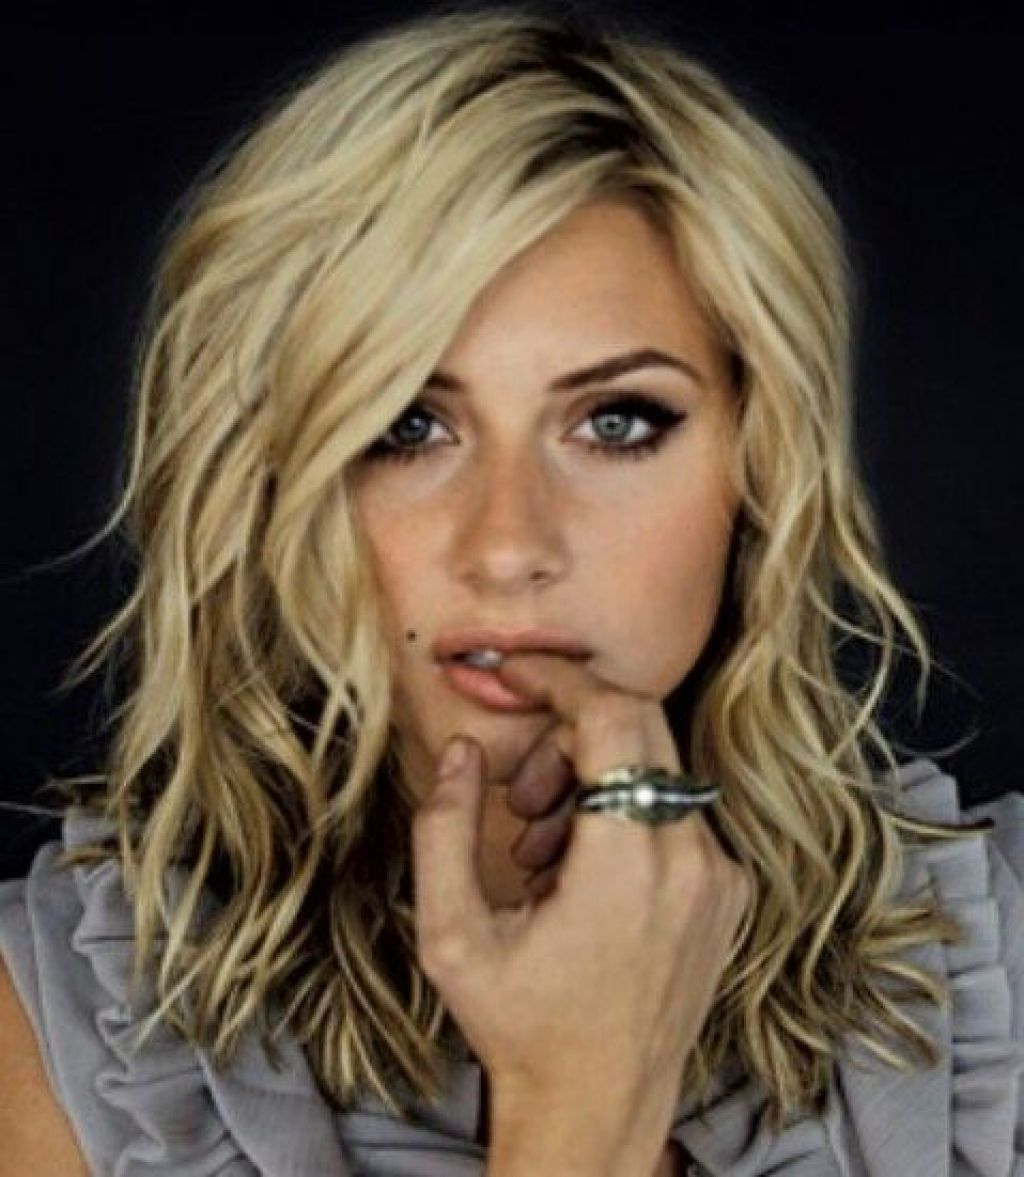 Medium Layered Wavy Hairstyles – Hairstyle For Women & Man Inside Most Recently Released Medium Layered Wavy Haircuts (View 10 of 20)